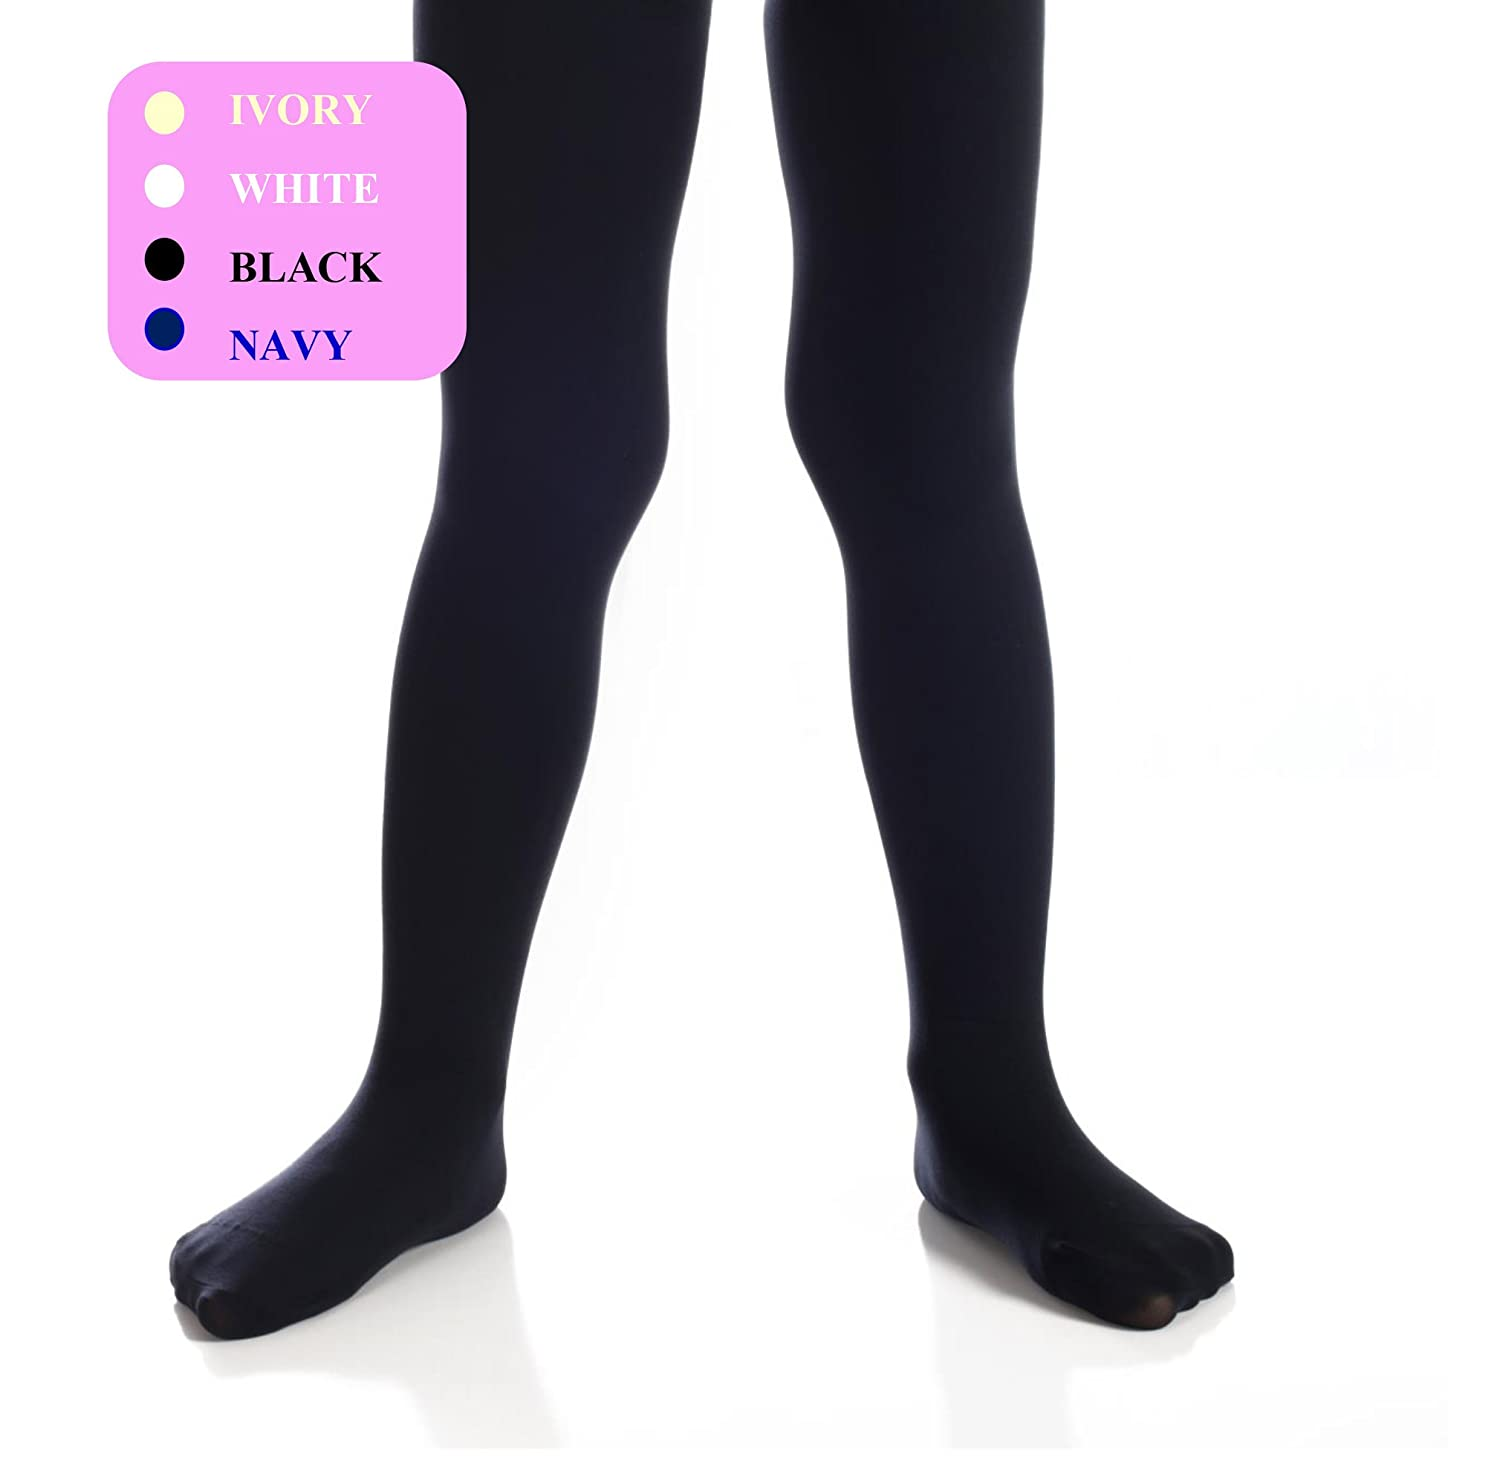 Top Fit Girls Tights - Kids Opaque, Microfiber Tights - Dance, School, Uniform - Black, White, Navy, and Ivory